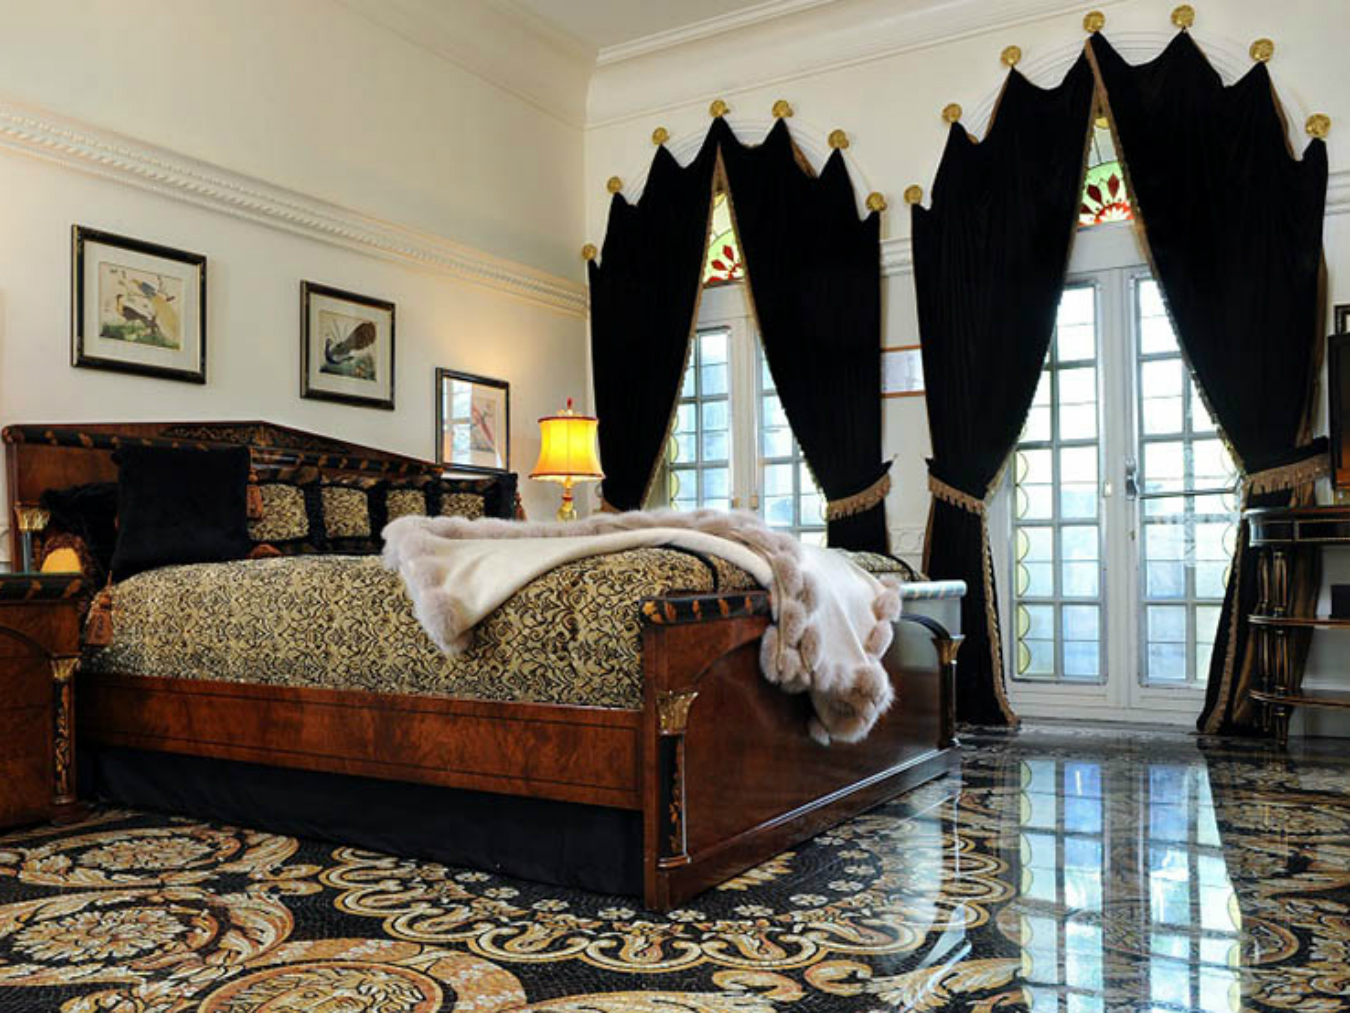 versace mansion miami montecristo. Black Bedroom Furniture Sets. Home Design Ideas